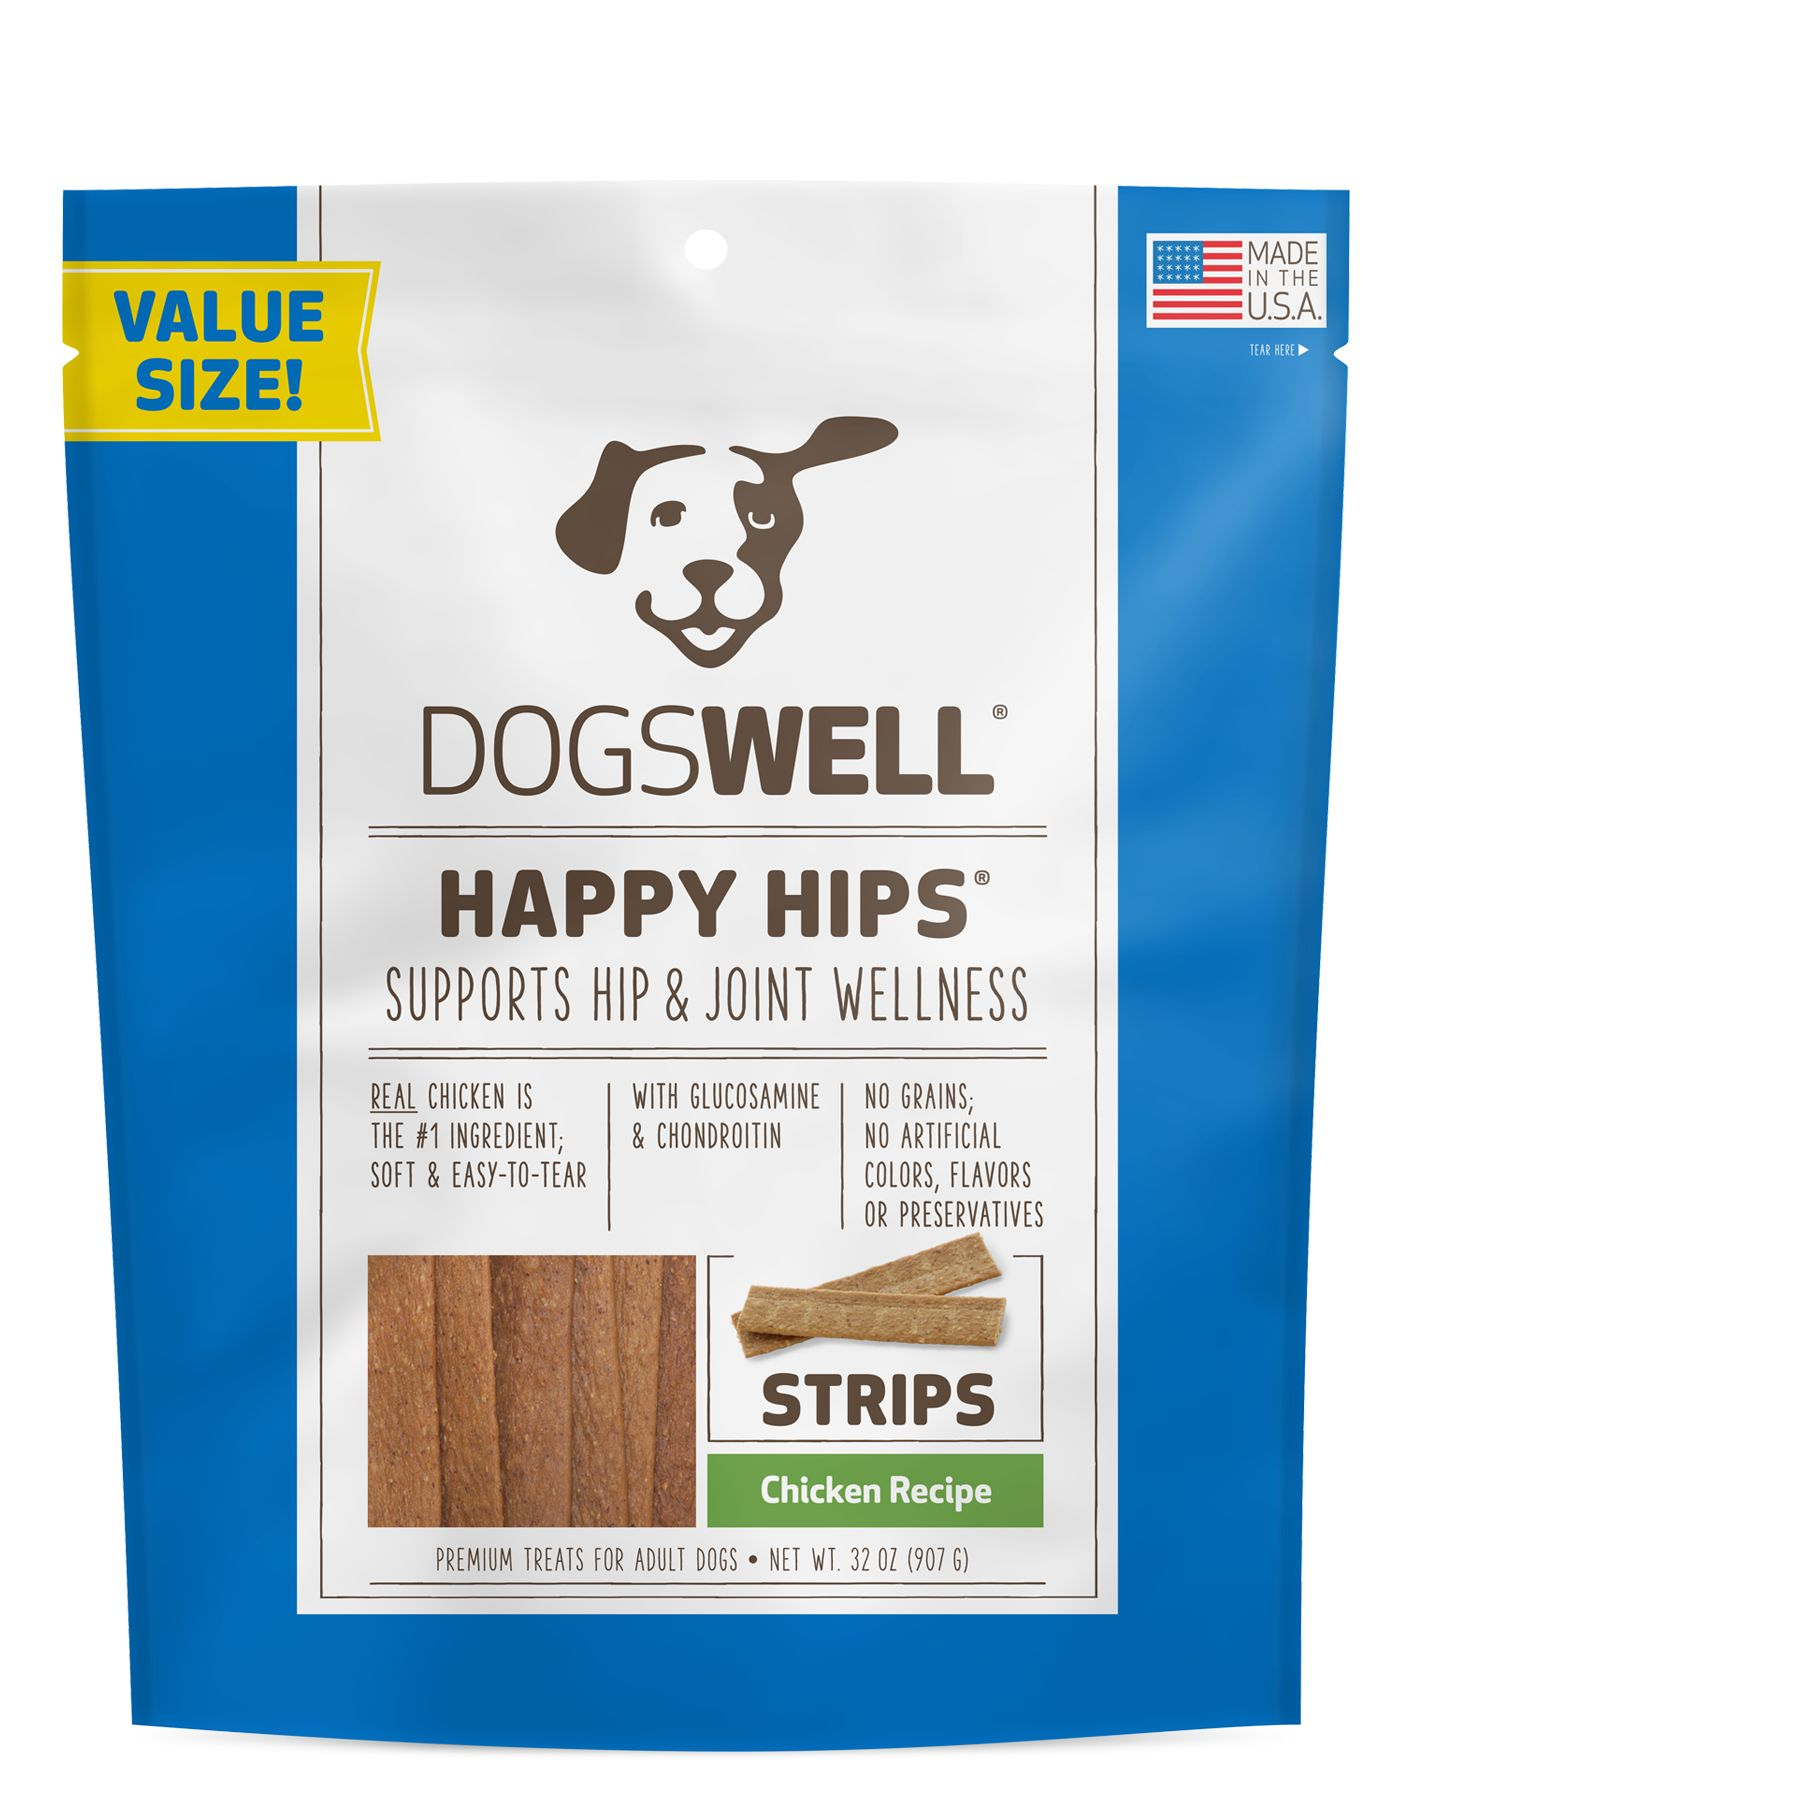 Dogswell Happy Hips Dog Treat Grain Free Hip And Joint Health Chicken Strips Size 32 Oz Adult Chicken Dog Treats Chicken Treats Dog Treats Grain Free